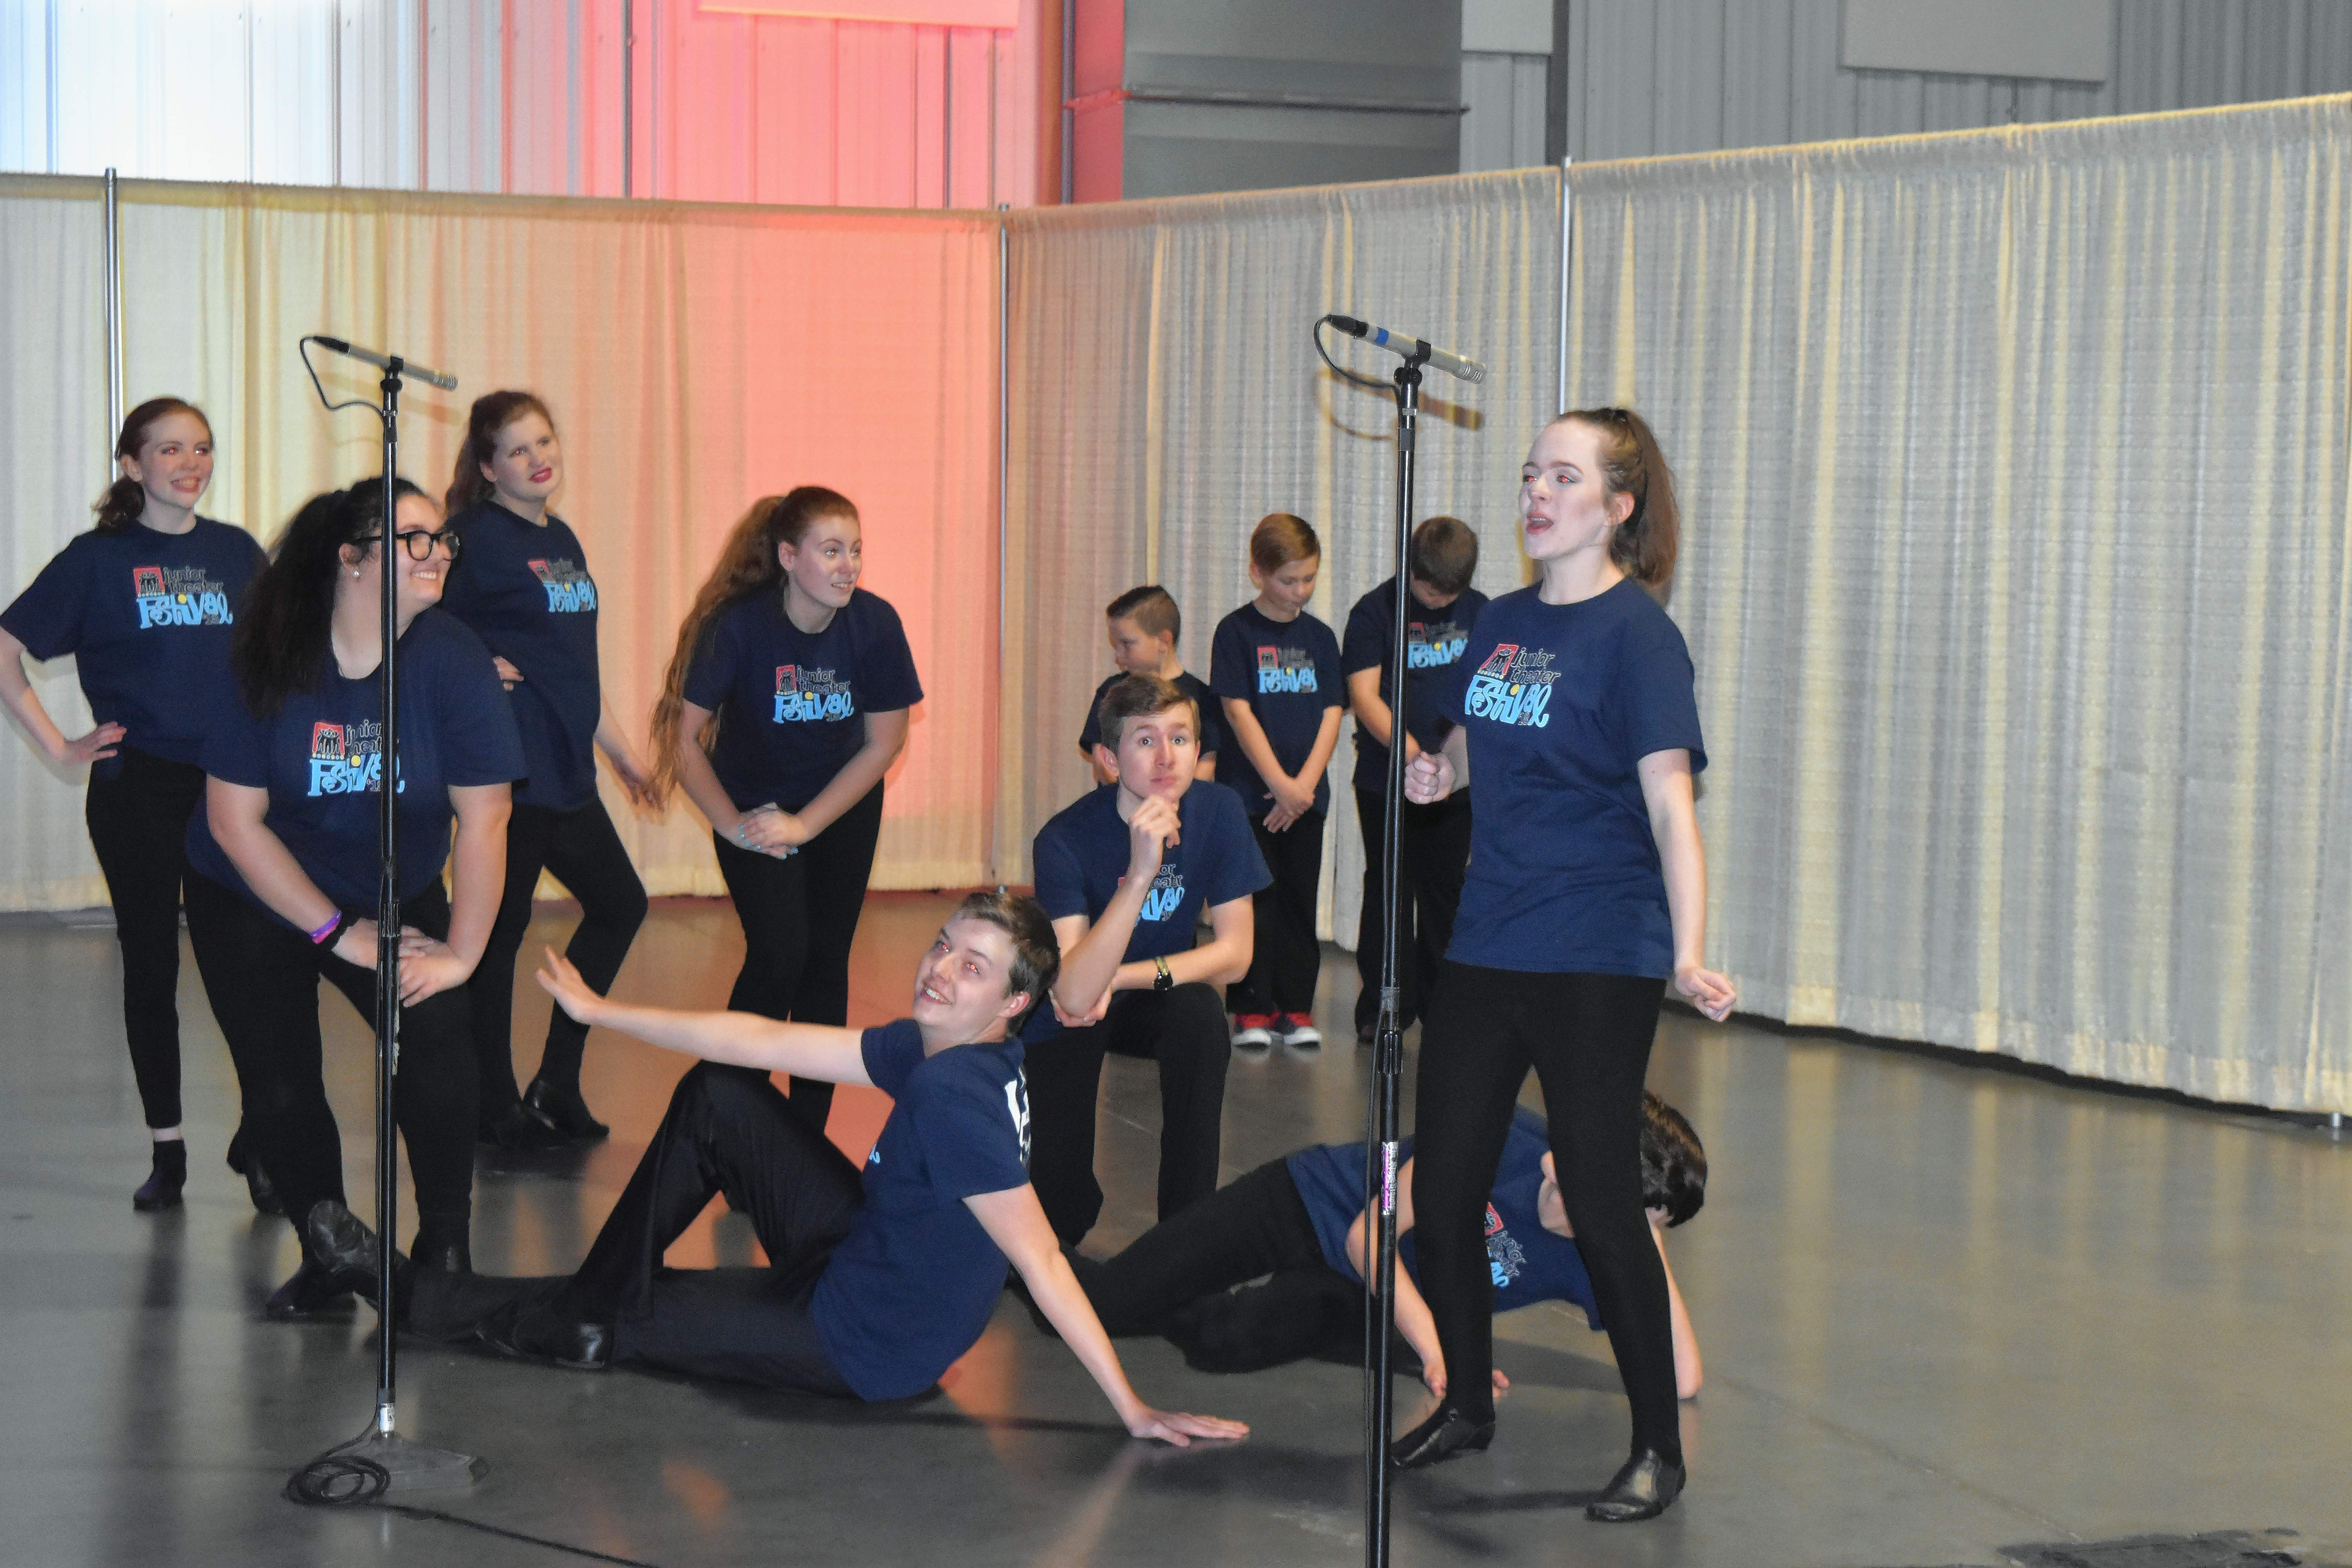 Artstarts, a local performing group, entertained the 500-plus in attendance Friday at the 97th annual Marion Chamber of Commerce Awards Banquet and Auction.